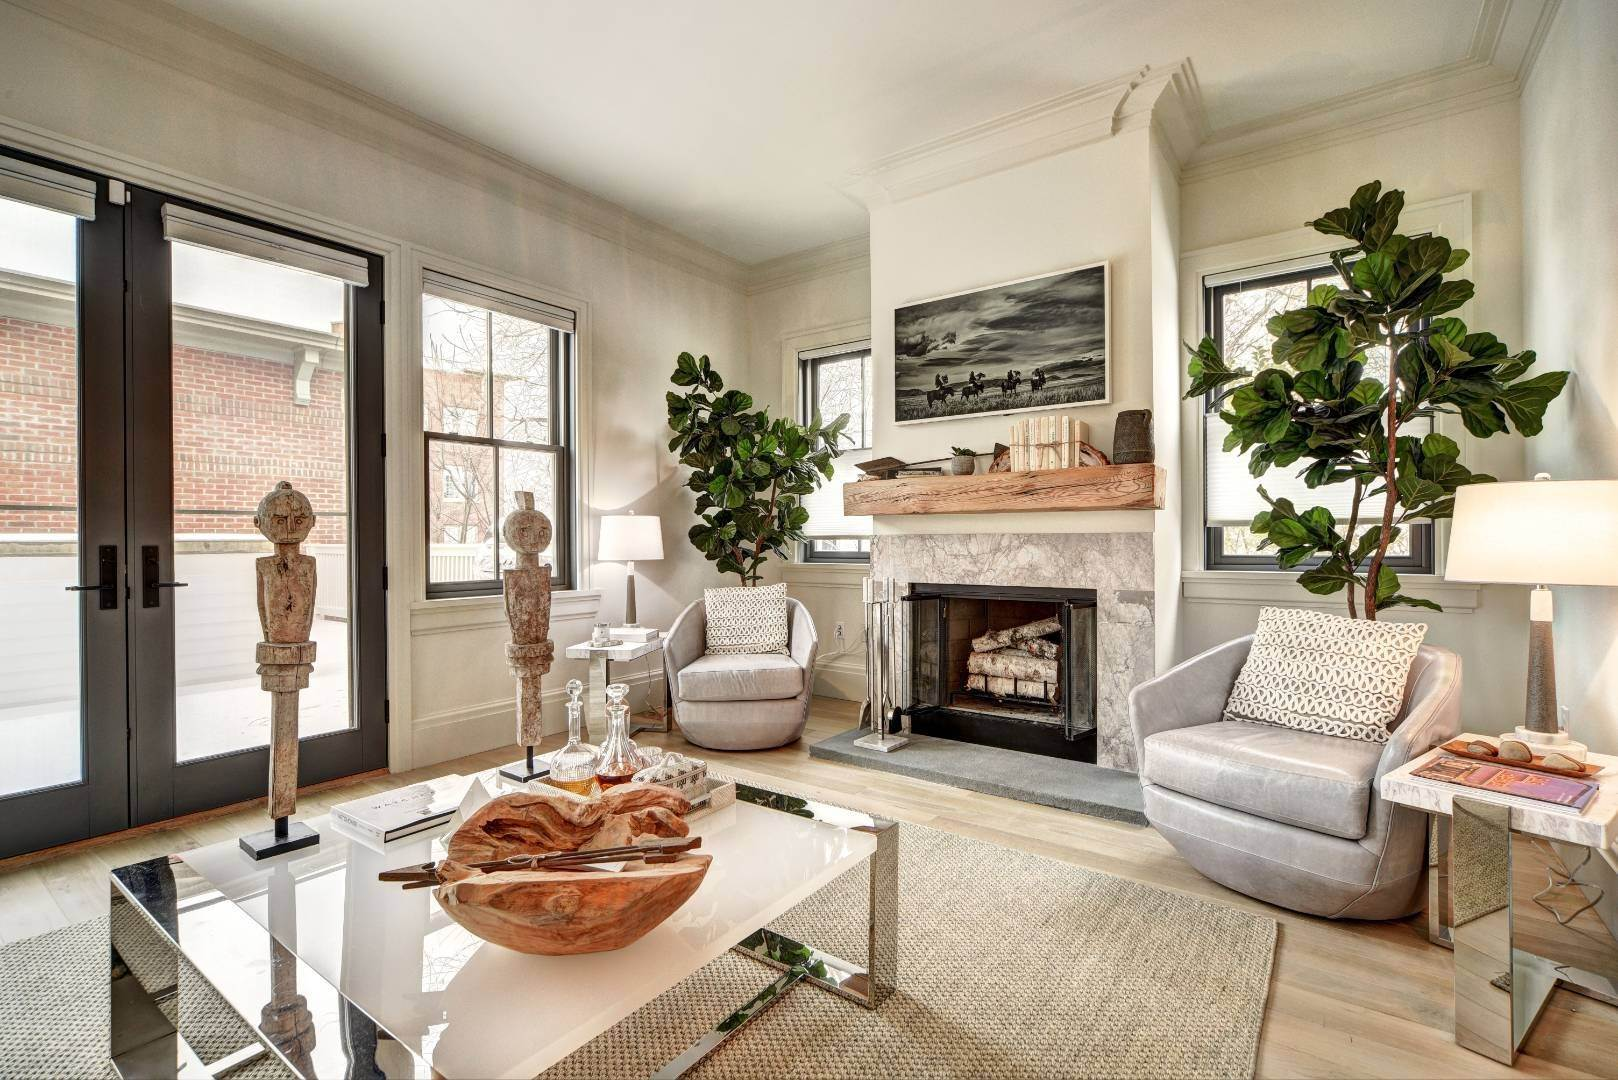 10. Condominiums at Watchcase Townhouse - Fall/Winter Rental 2 Sage Street, Sag Harbor, NY 11963